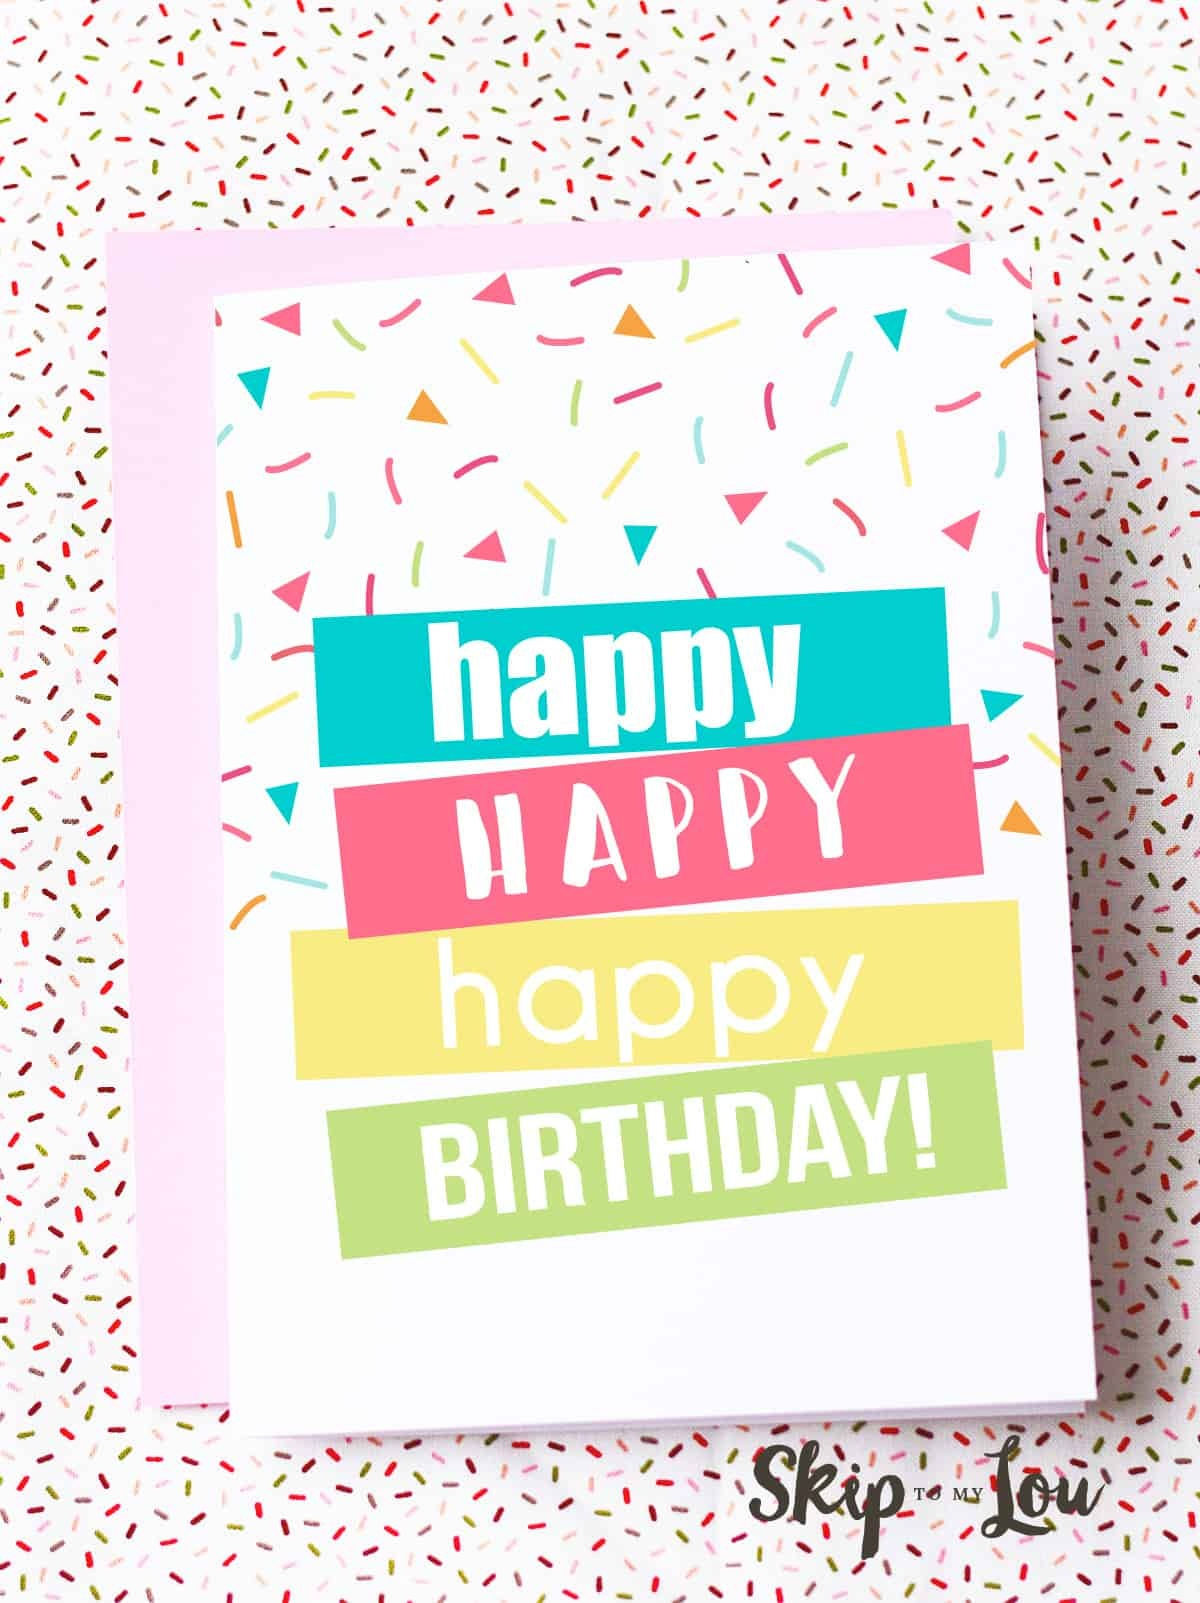 Free Printable Birthday Cards | Skip To My Lou - Free Printable Happy Birthday Cards